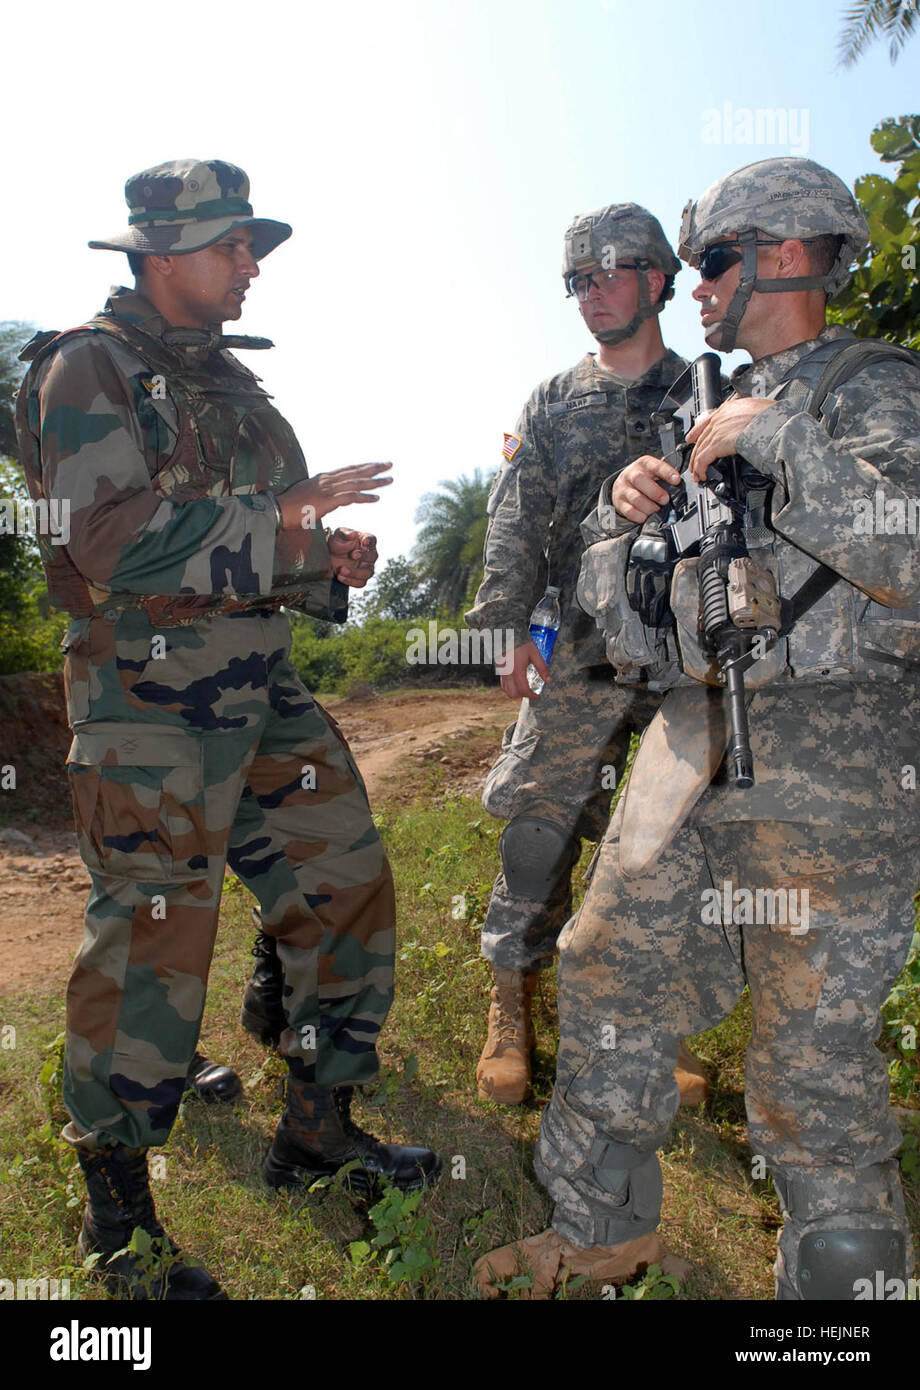 """CAMP BUNDELA, India (Oct. 15, 2009) – An Indian Army officer from the 7th mechanized Infantry Regiment, prepares U.S. Army Sgt.1st Class Michael Moyer, Troop C, 2nd Squadron, 14th Cavalry Regiment """"Strykehorse,"""" 2nd Stryker Brigade Combat Team, 25th Infantry Division, from Schofield Barracks, Hawaii, for the jungle range during range training at Exercise Yudh Abhyas 09, Oct. 15. YA09 is a bilateral exercise involving the Armies of India and the United States. US Army 53412 Range Training in India fires up Strykehorse Soldiers Stock Photo"""